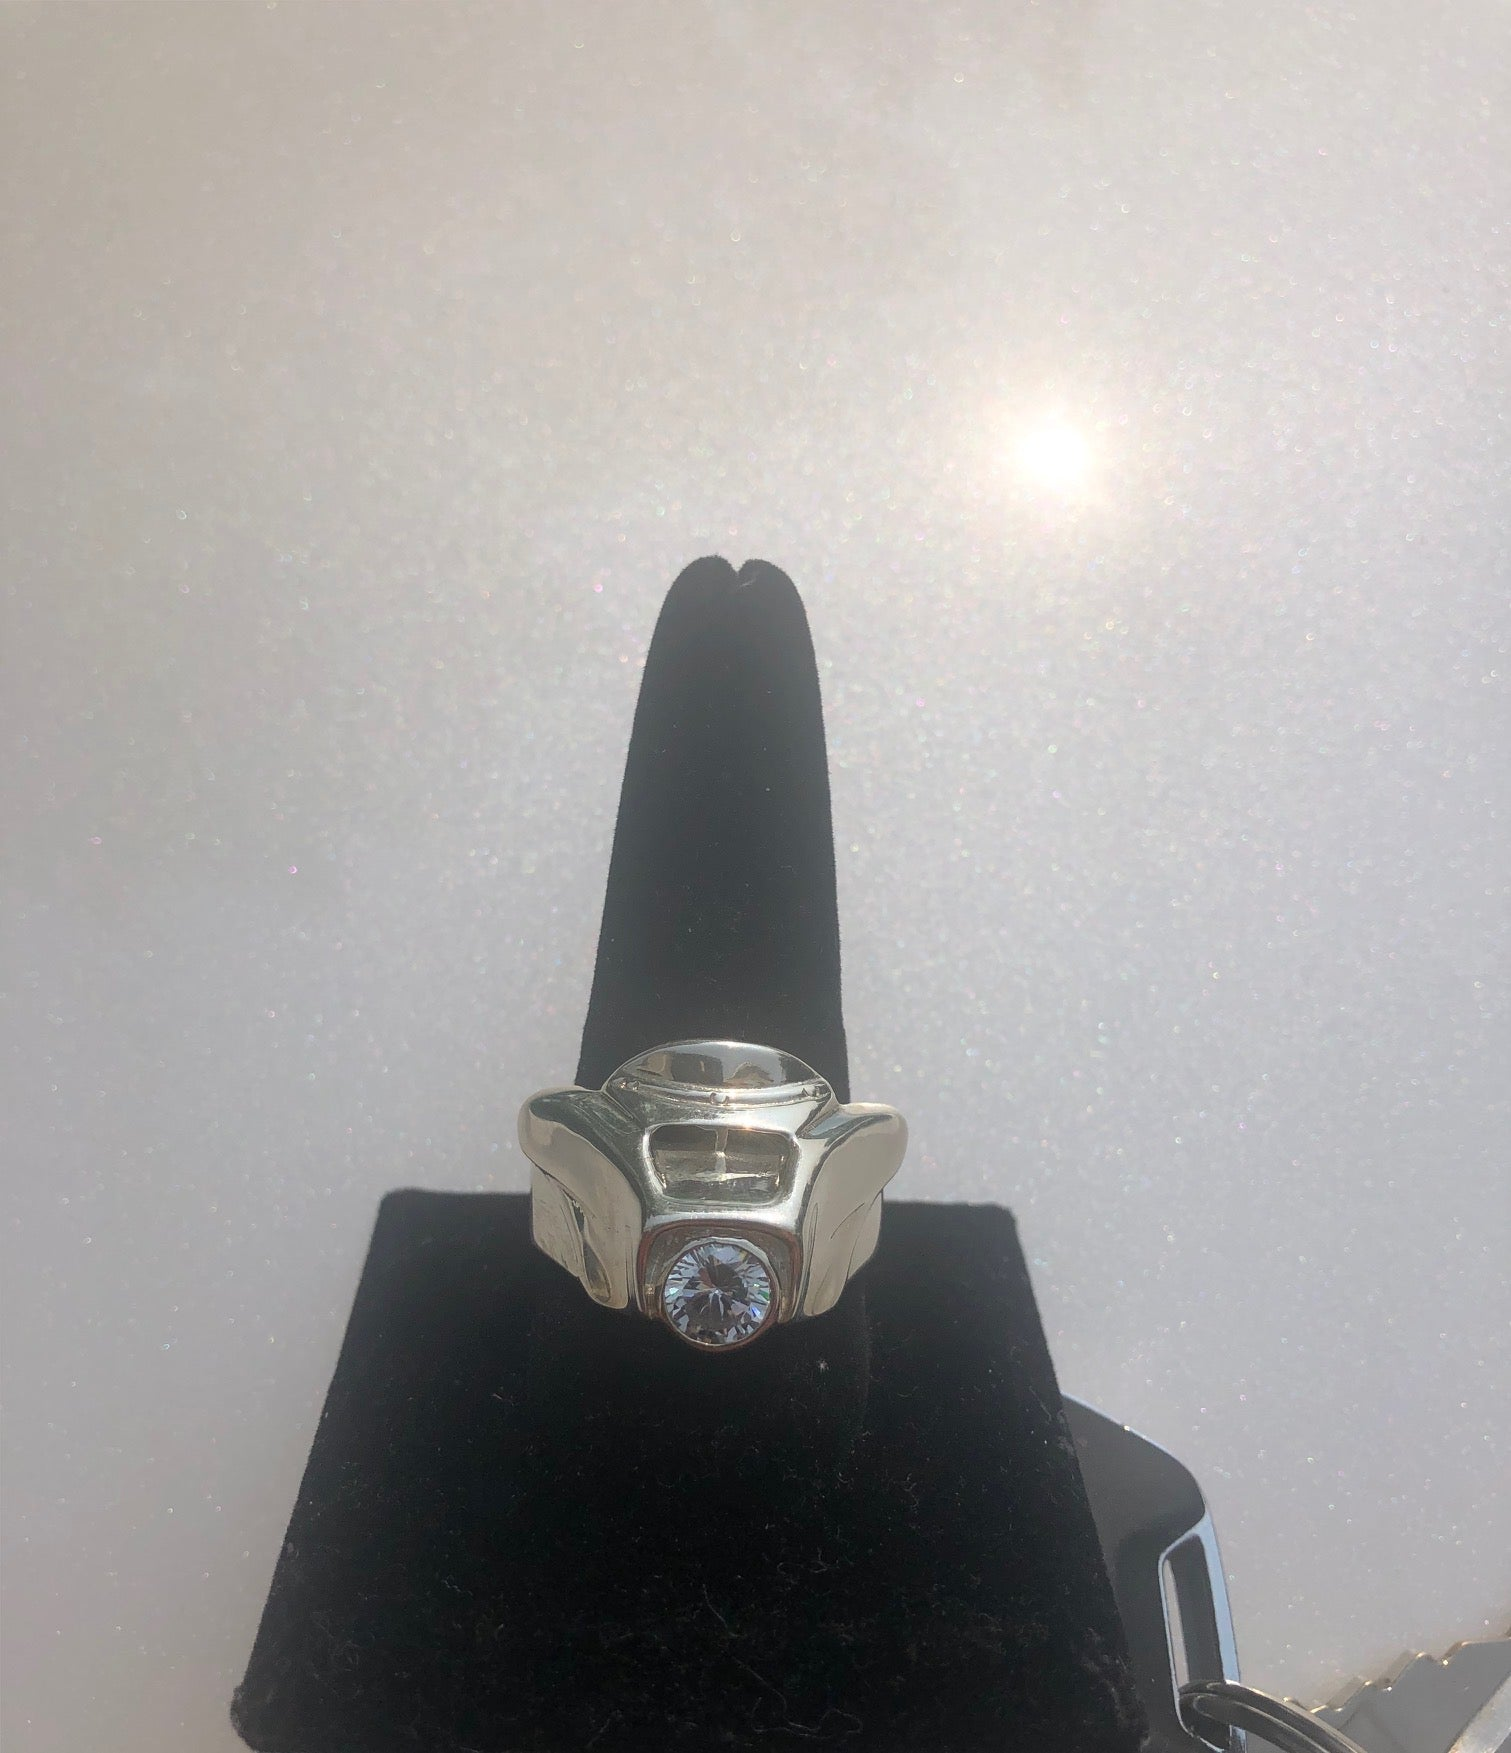 One Stone Fairing Ring